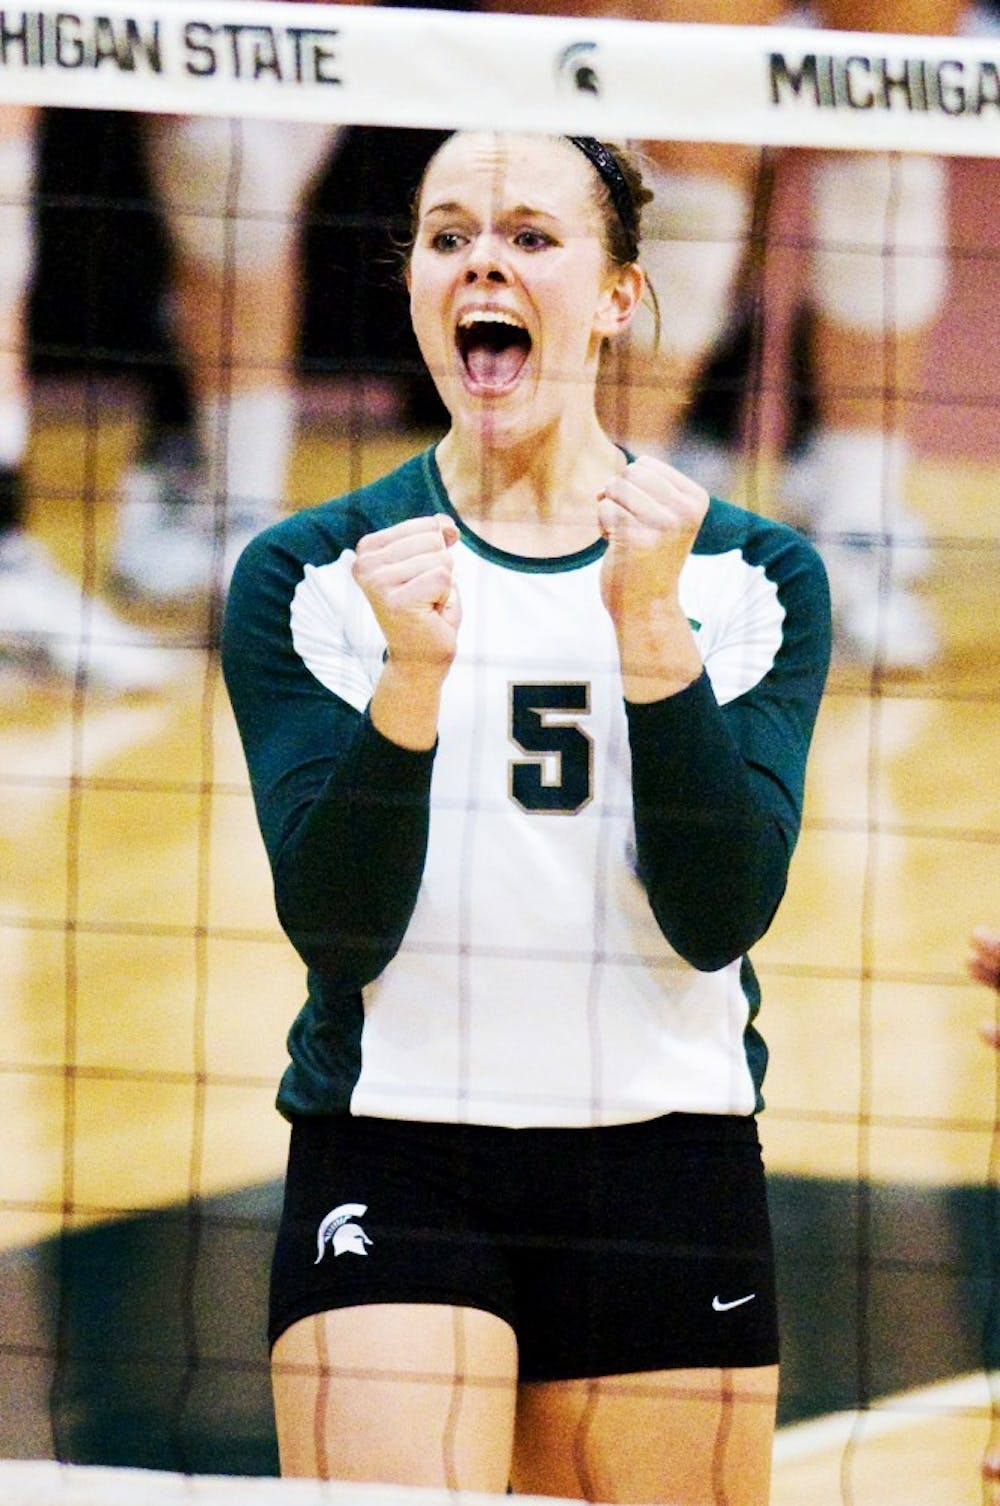 Senior outside hitter Jenilee Rathje reacts to play Wednesday at Jenison Field House. The Spartans defeated the Michigan Wolverines 3-1. Matt Radick/The State News